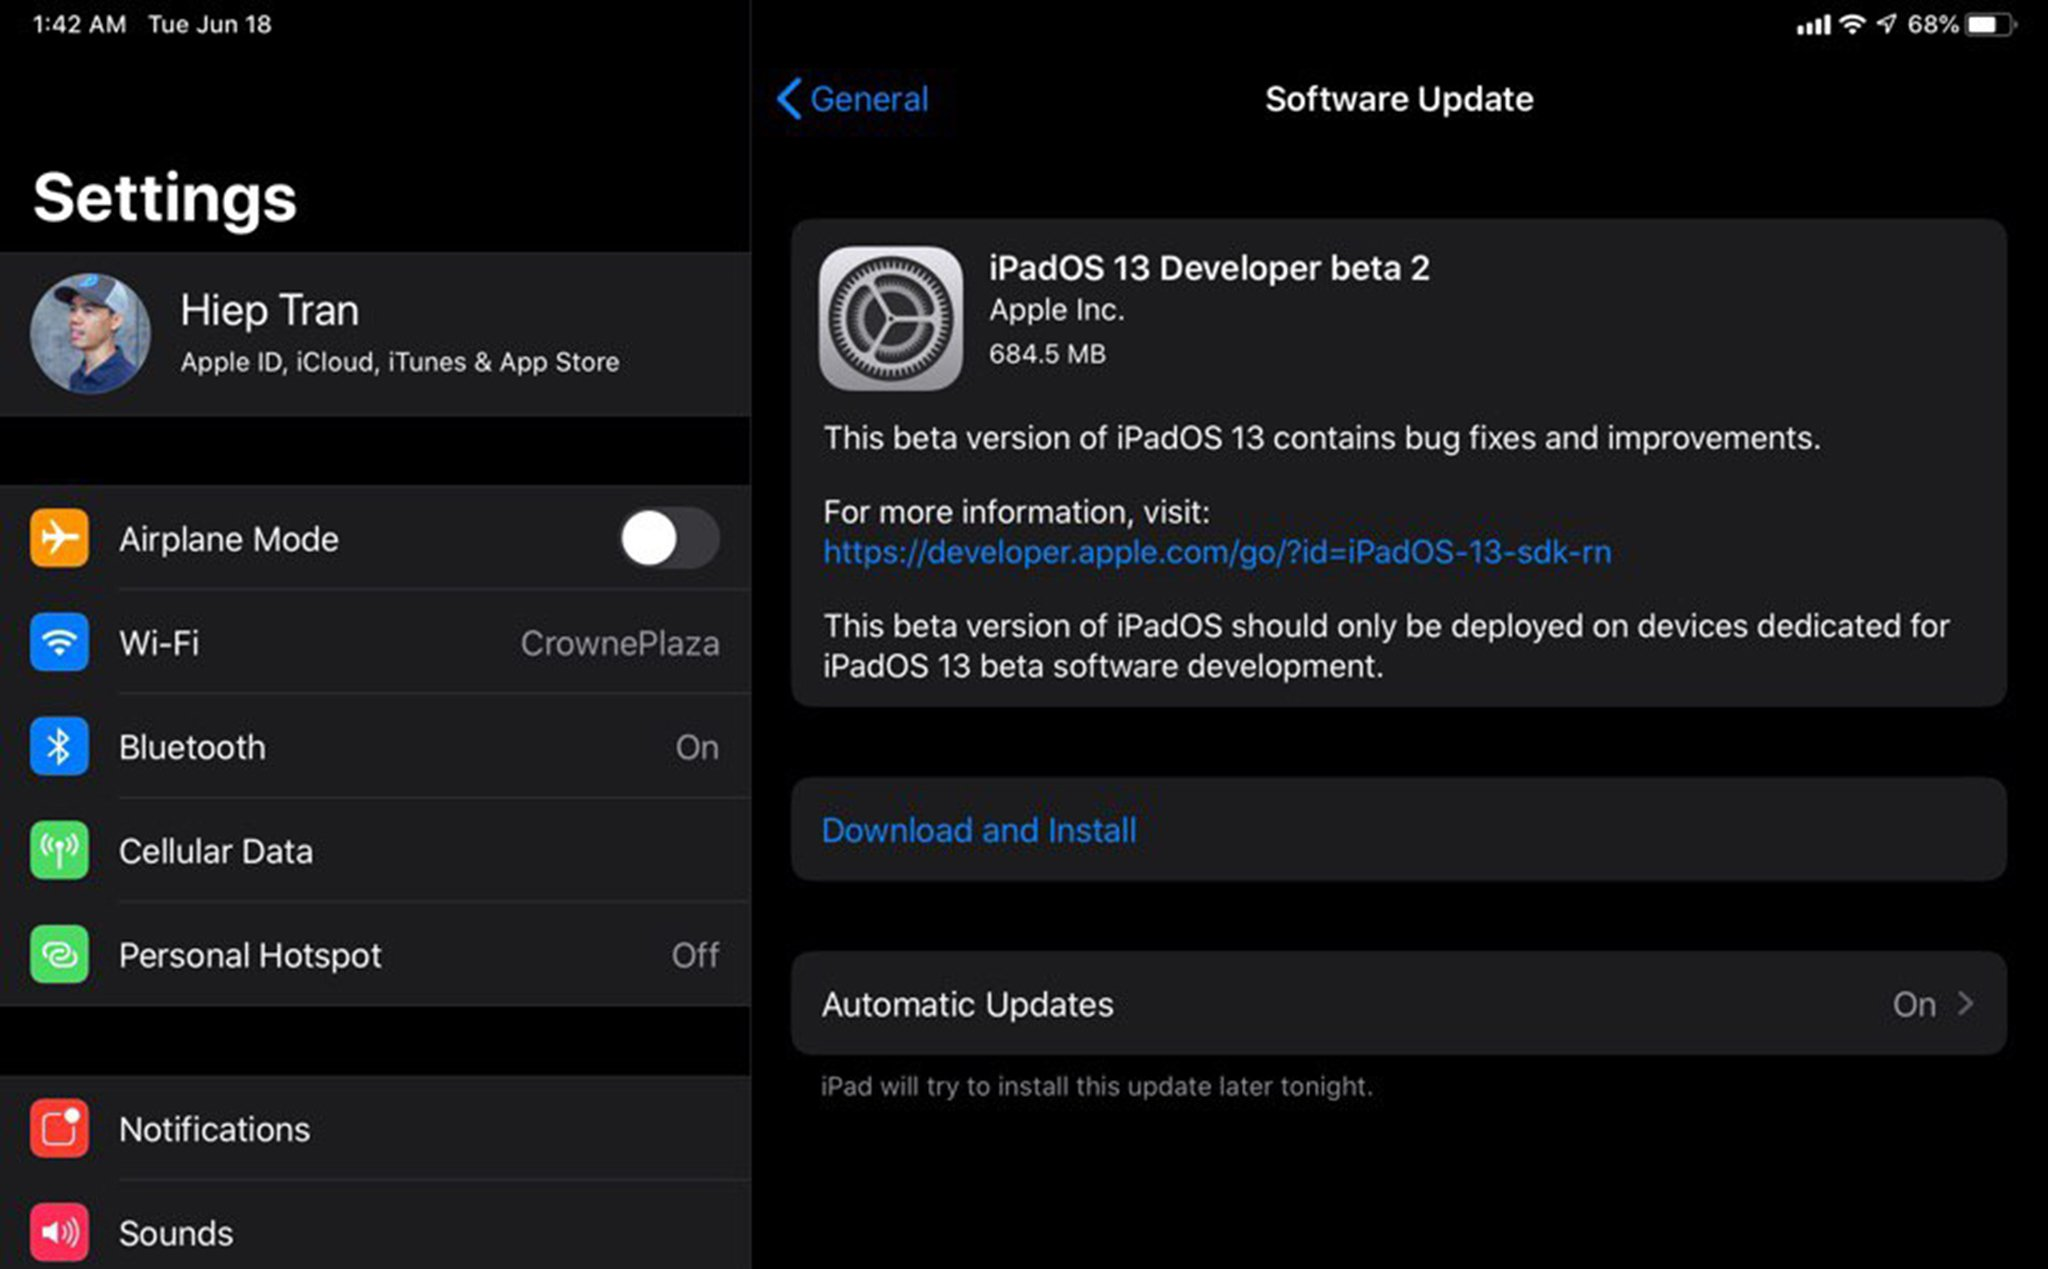 Already have iOS 13 beta 2, come on brother!